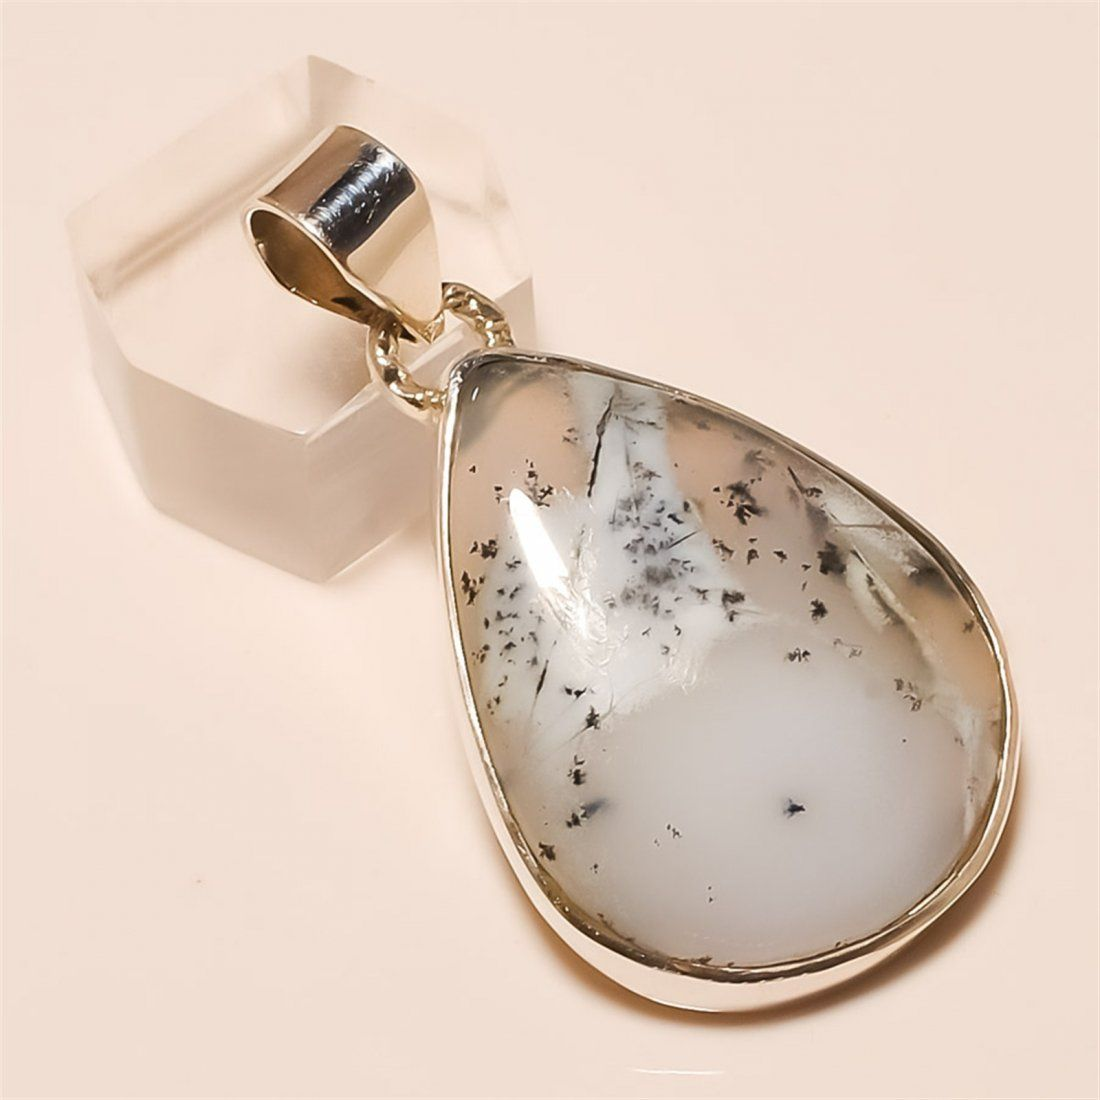 Dendrite Opal Pendant Solid Sterling Silver